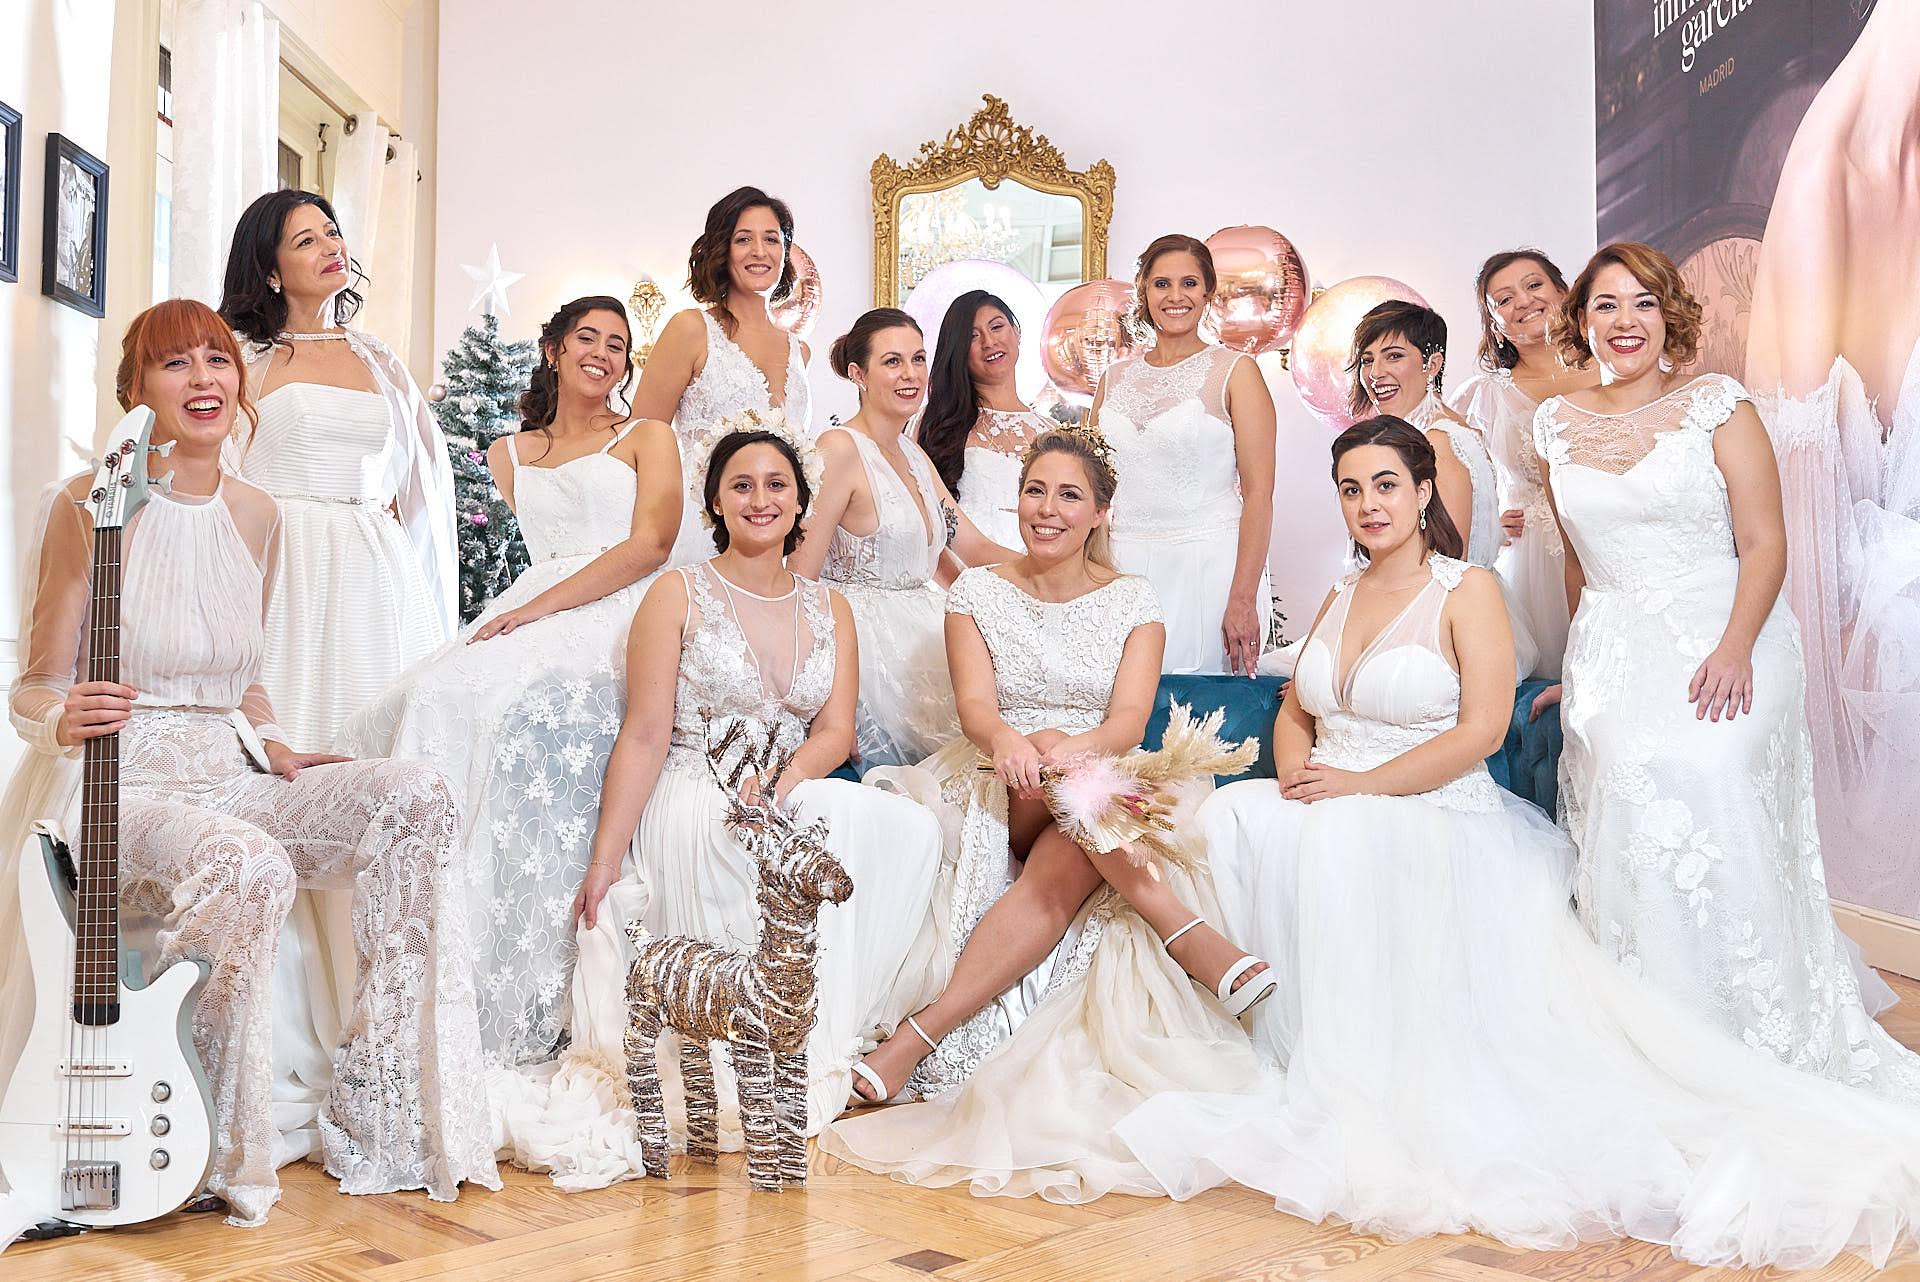 Foto club de wedding planner